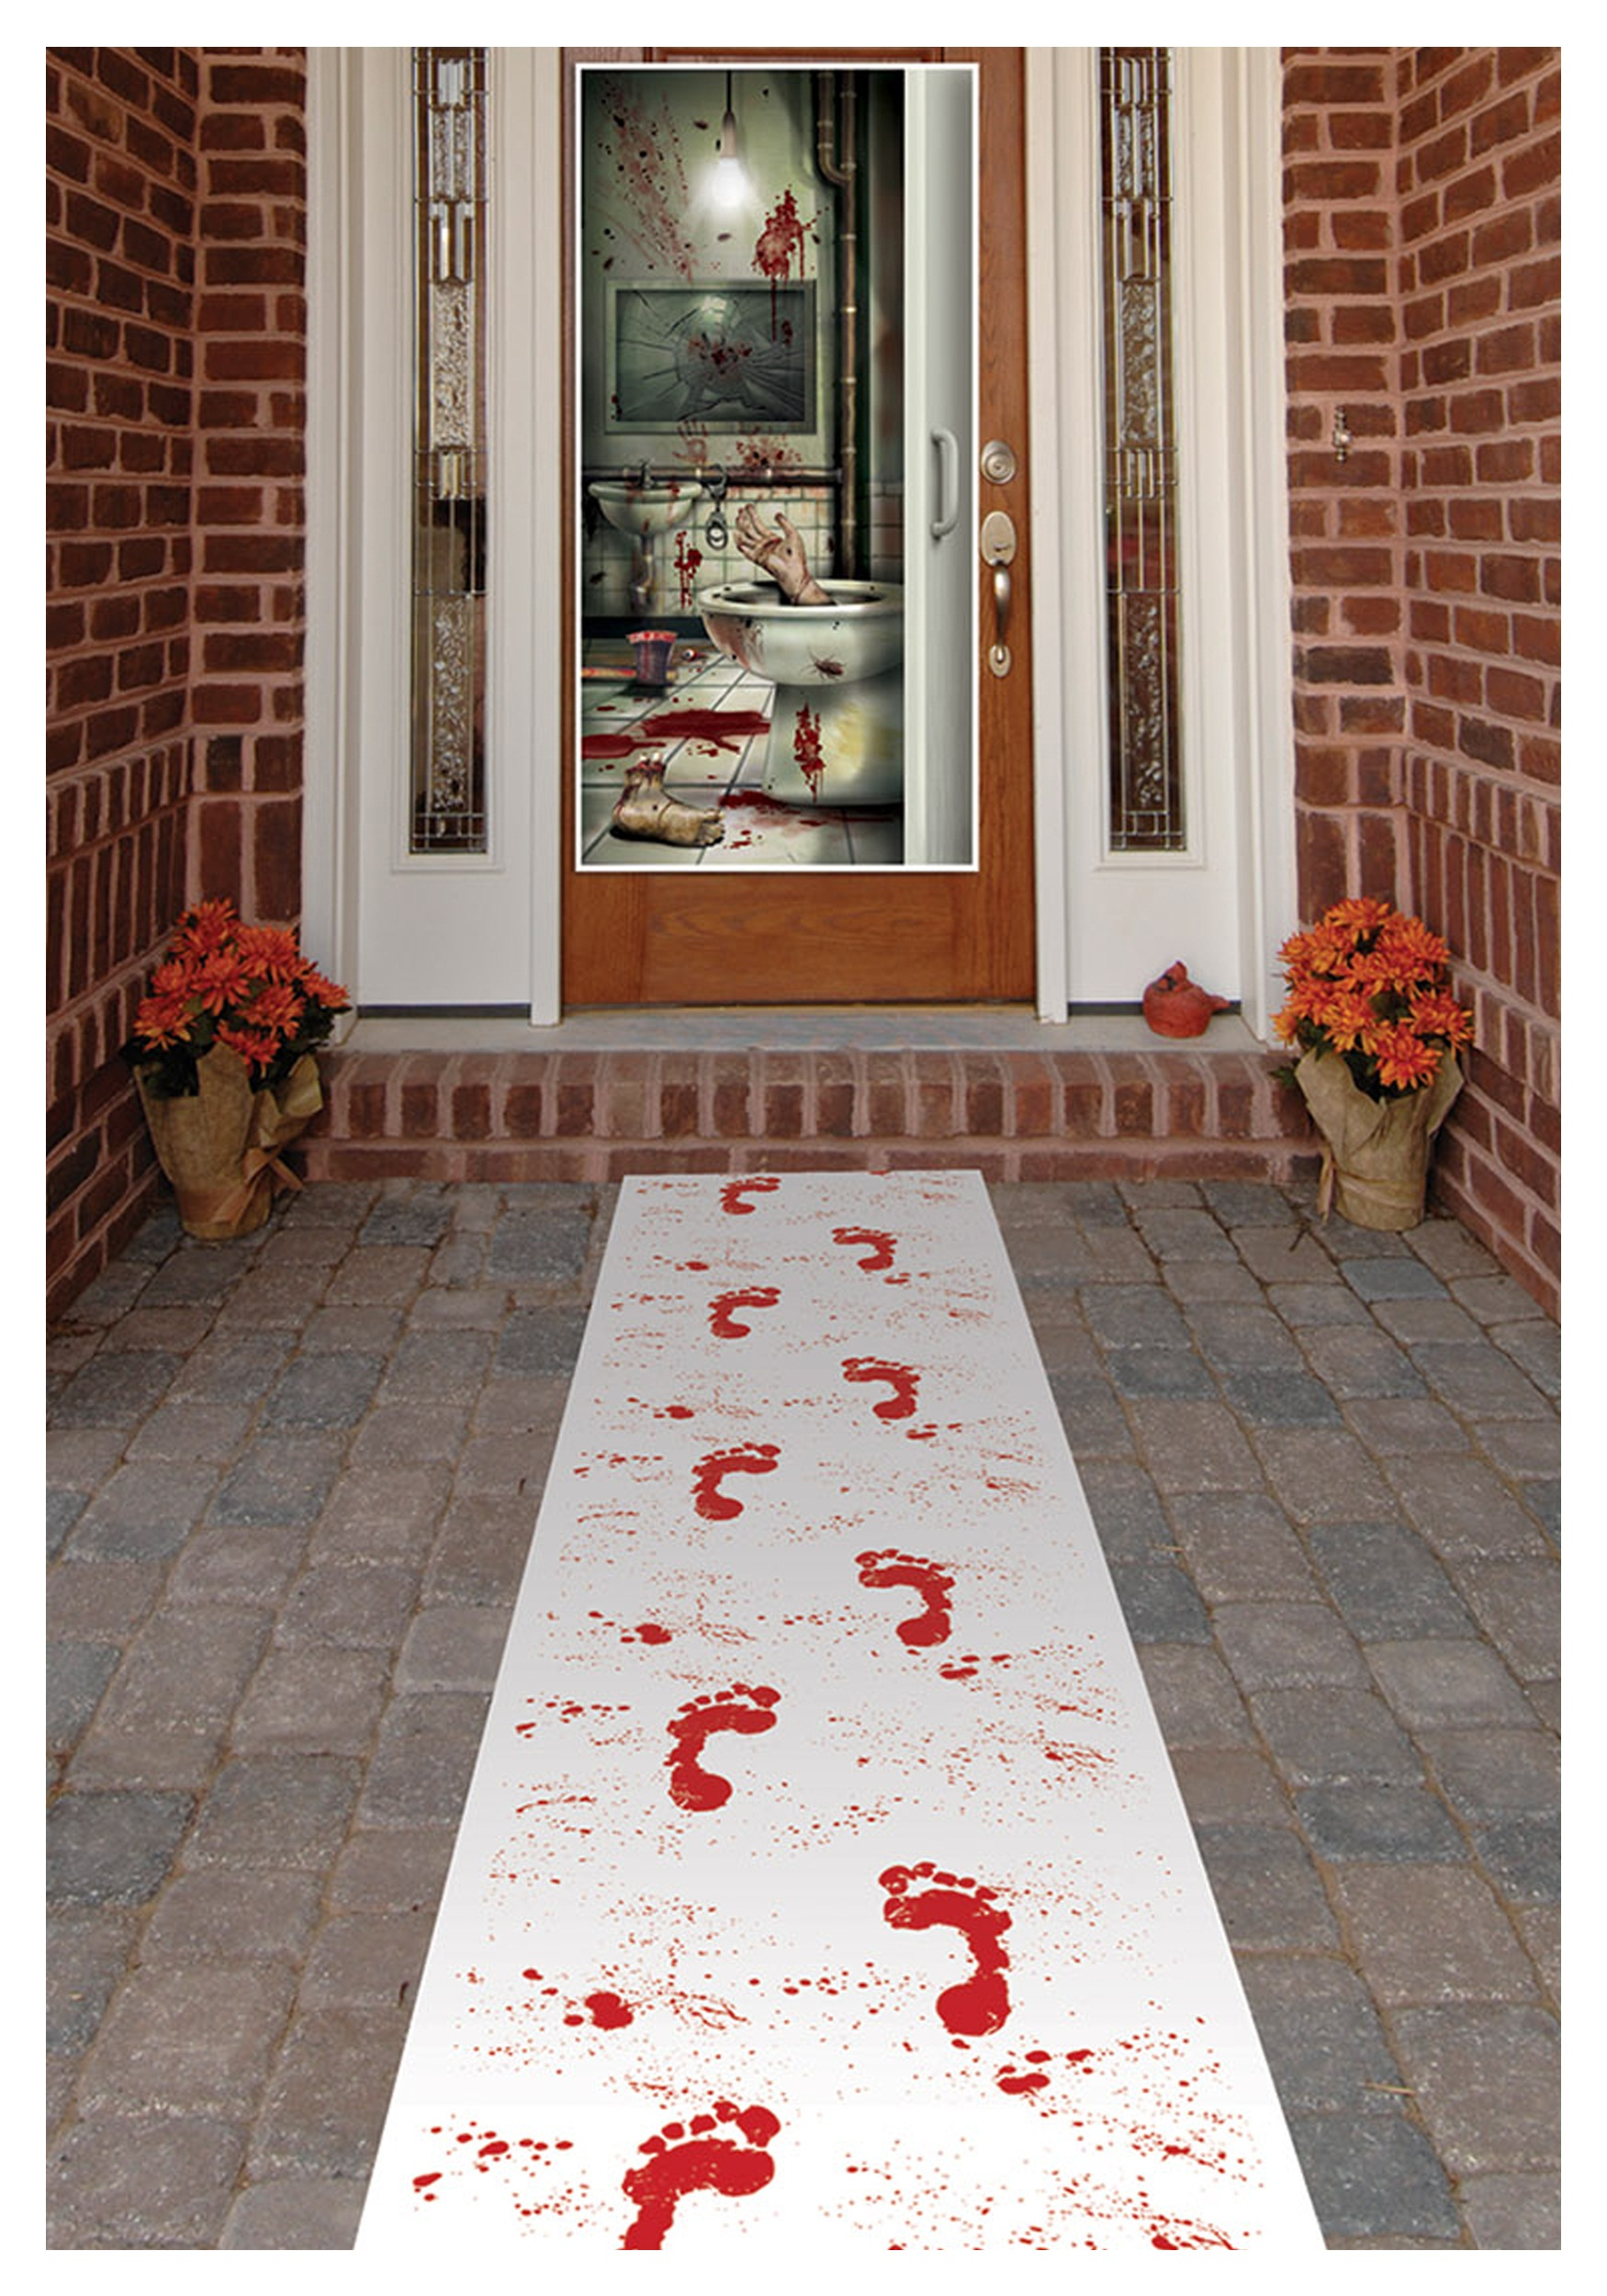 Bloody footprints runner - Comment faire des decoration d halloween ...